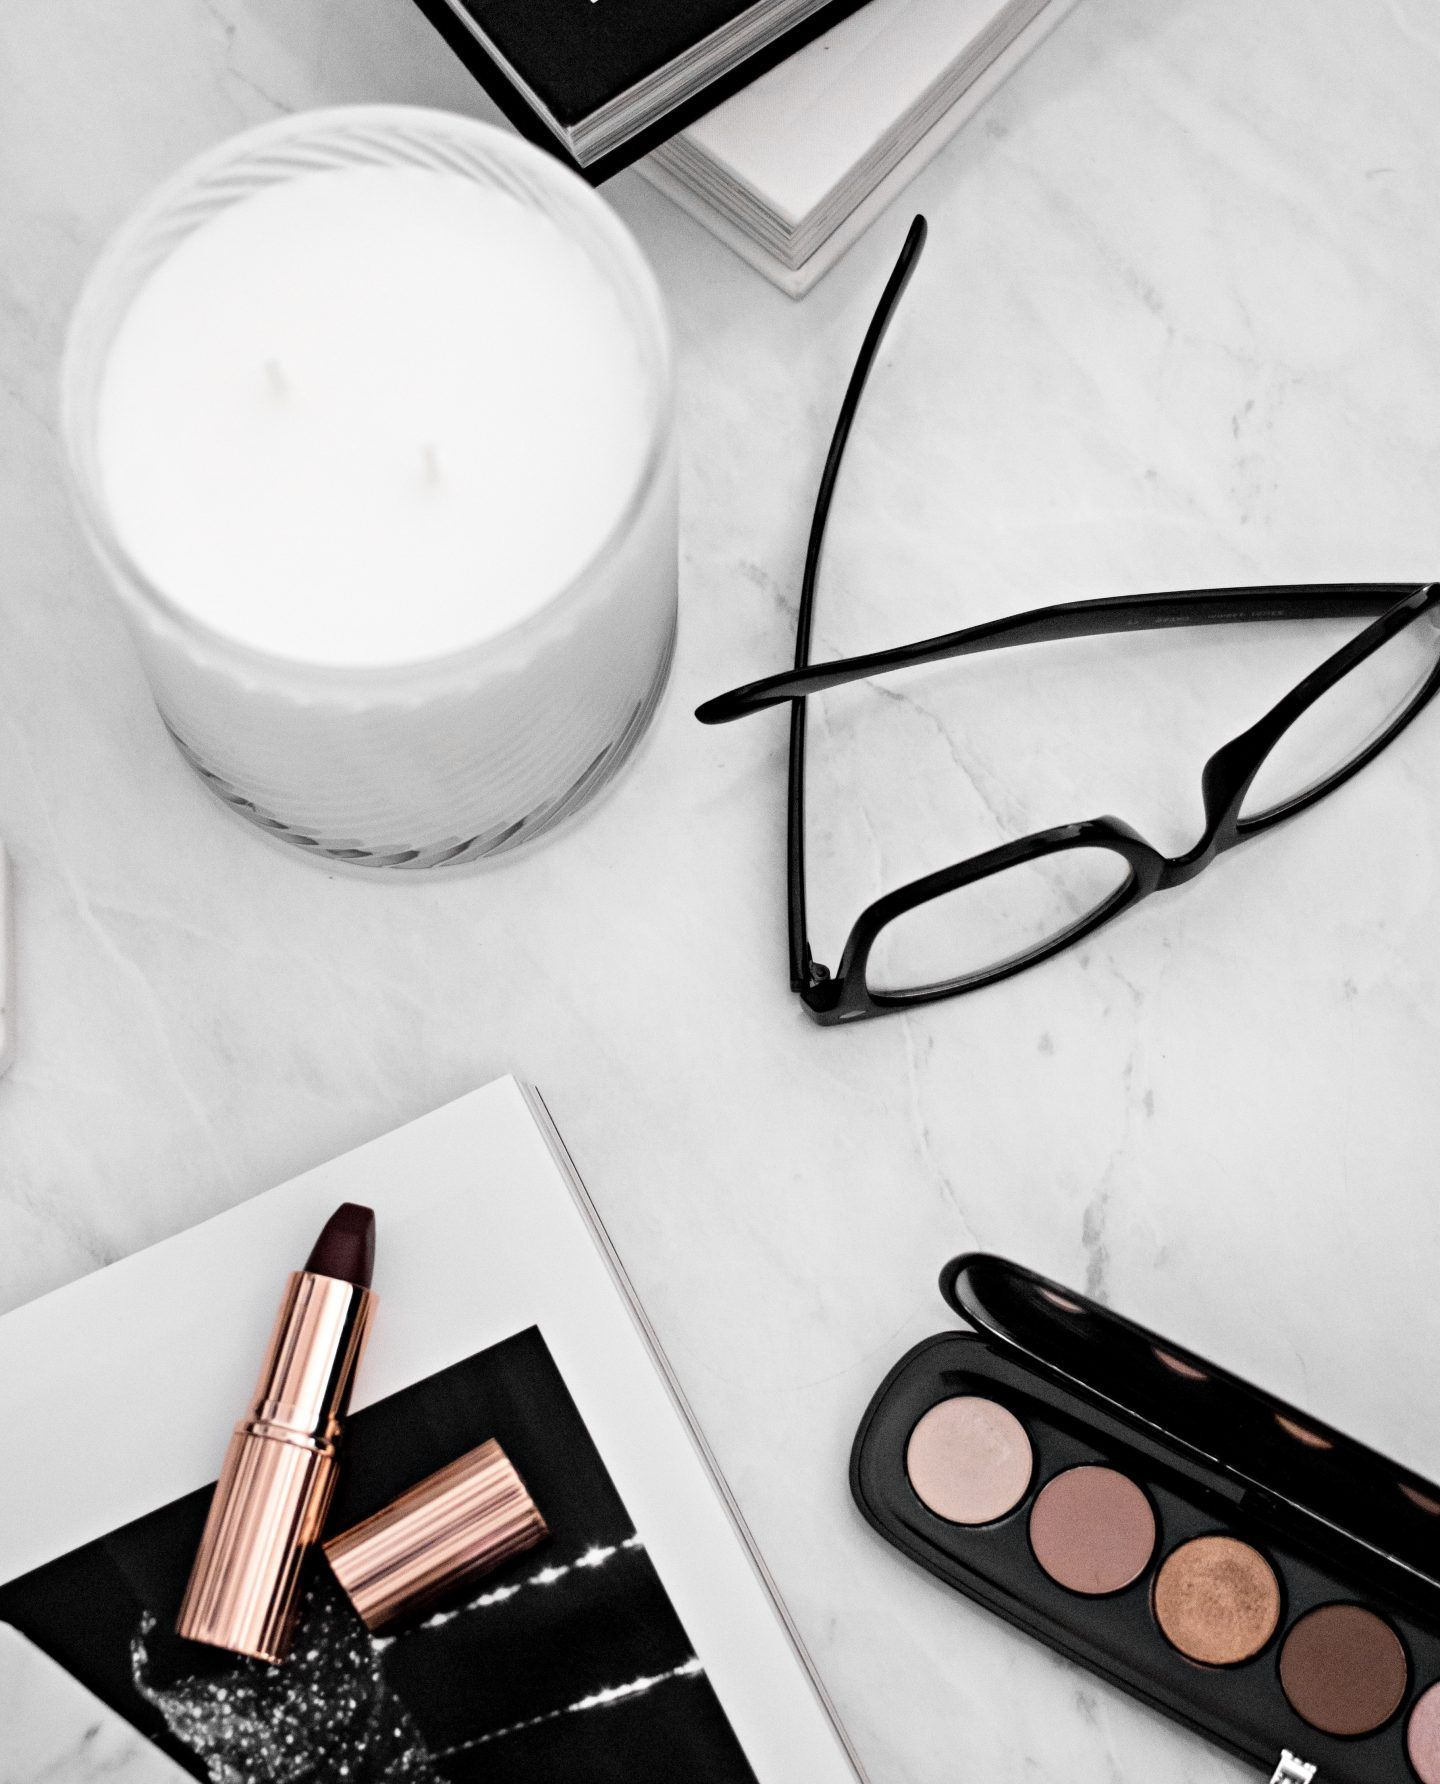 Upgrade Your Routine with Mineral Cosmetics #mineralcosmetics Beauty routine with Mineral Cosmetics Beauty Blogger #mineralcosmetics